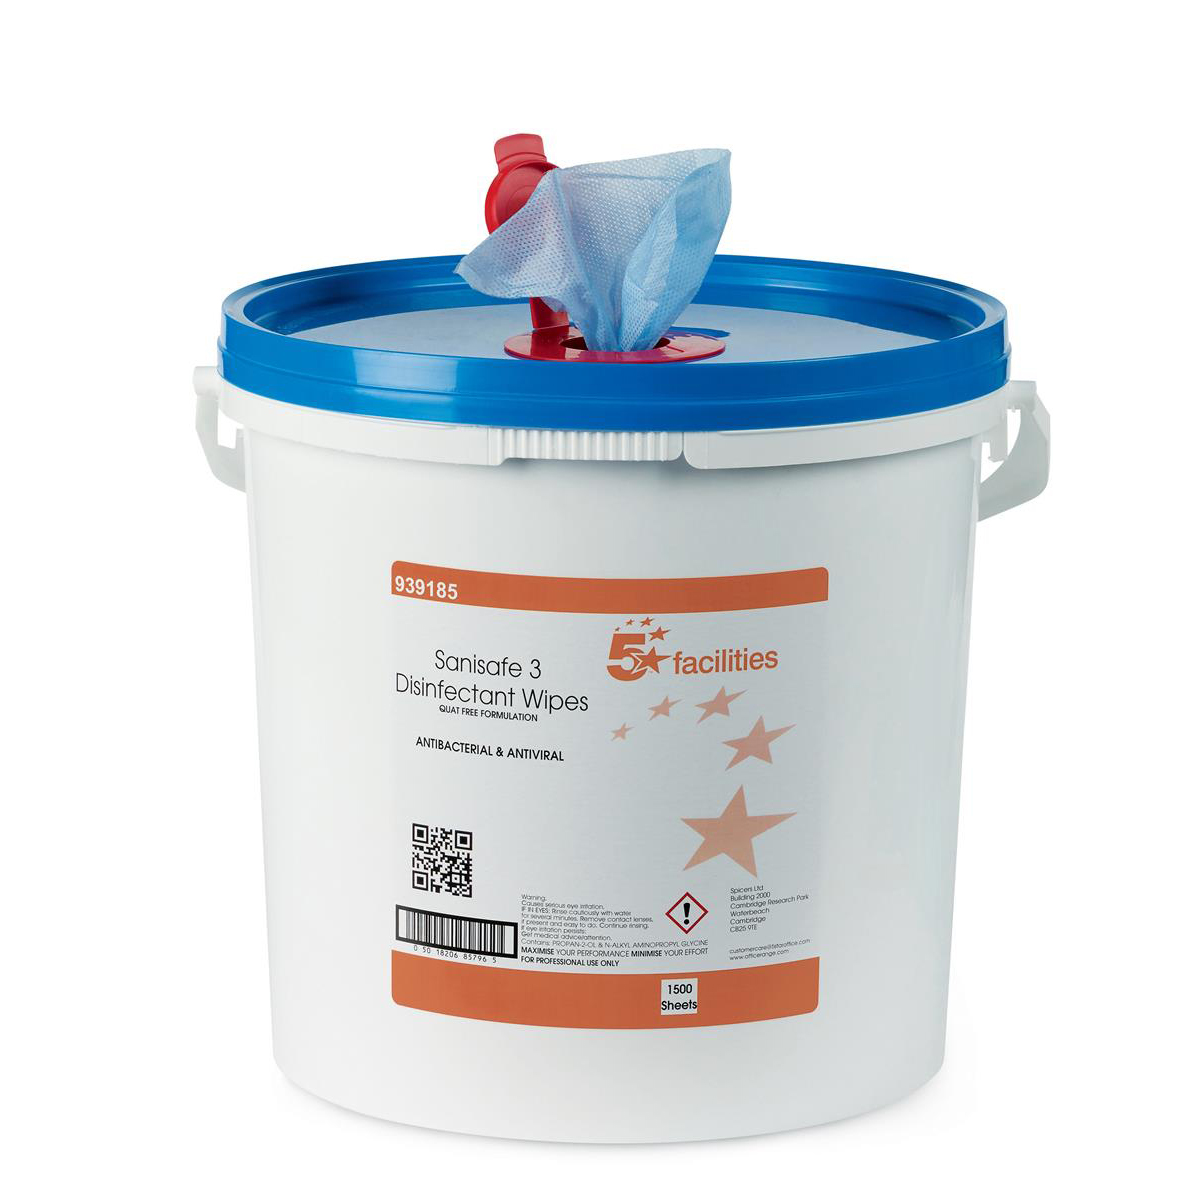 5 Star Facilities Disinfectant Wipes Anti-bacterial PHMB-free BPR Low-residue 19x20cm Tub 1500 Sheets